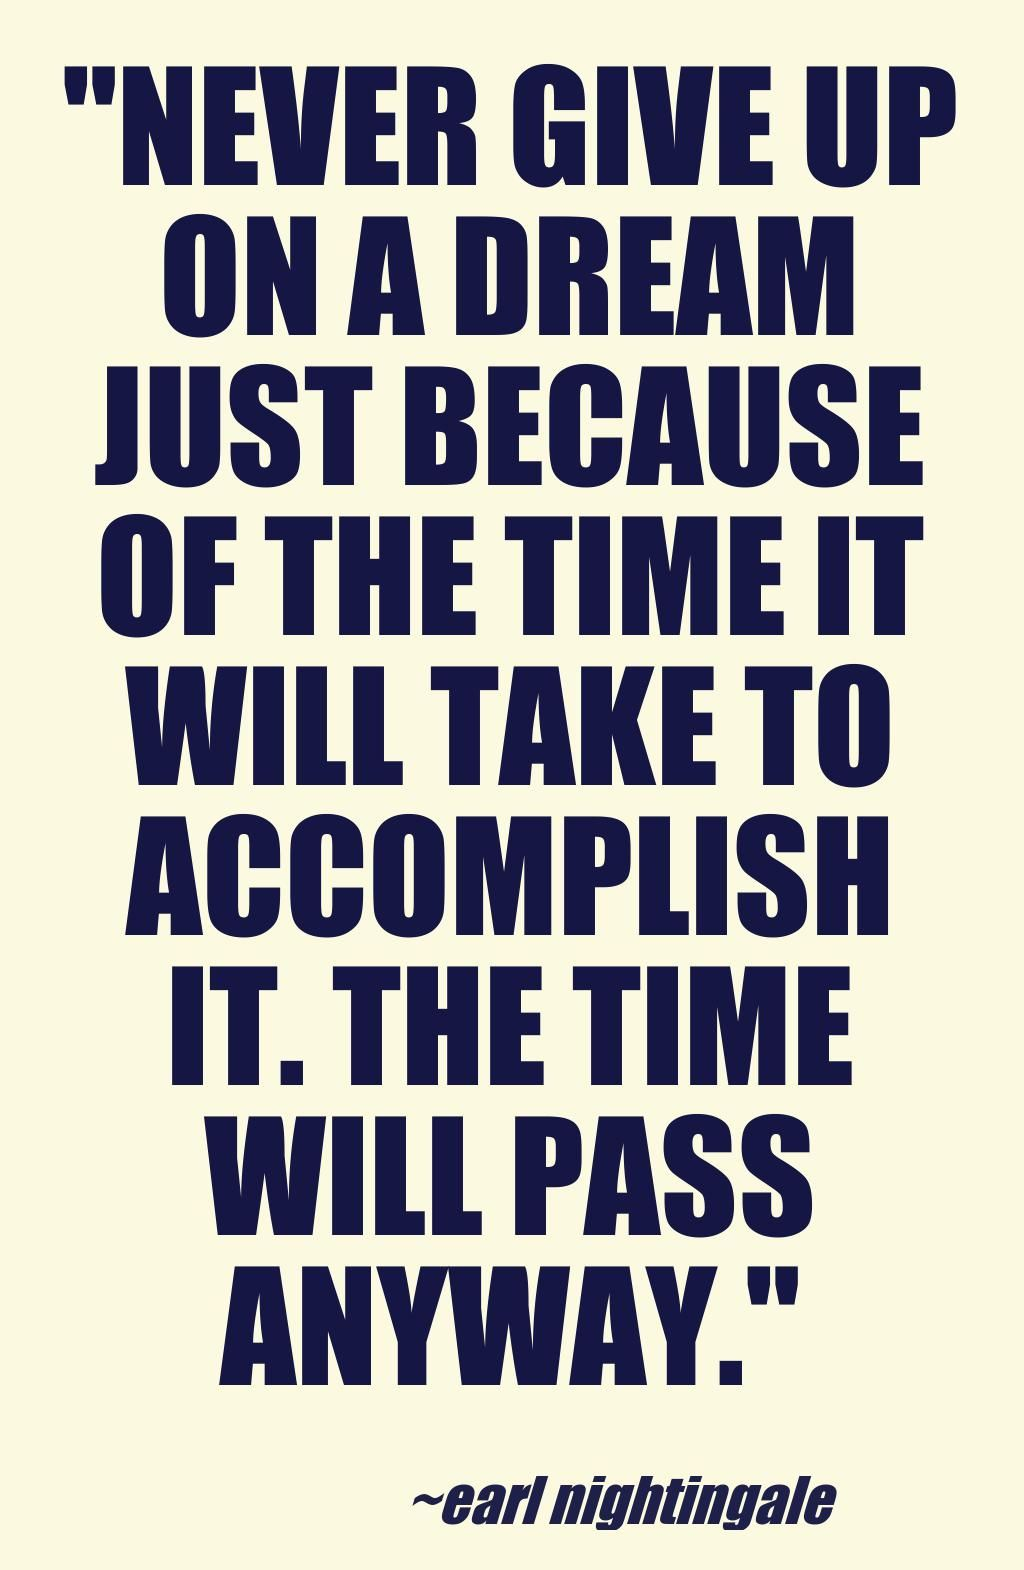 Is It Time To Give Up On Single >> Never Give Up On A Dream Just Because Of The Time It Will Take To